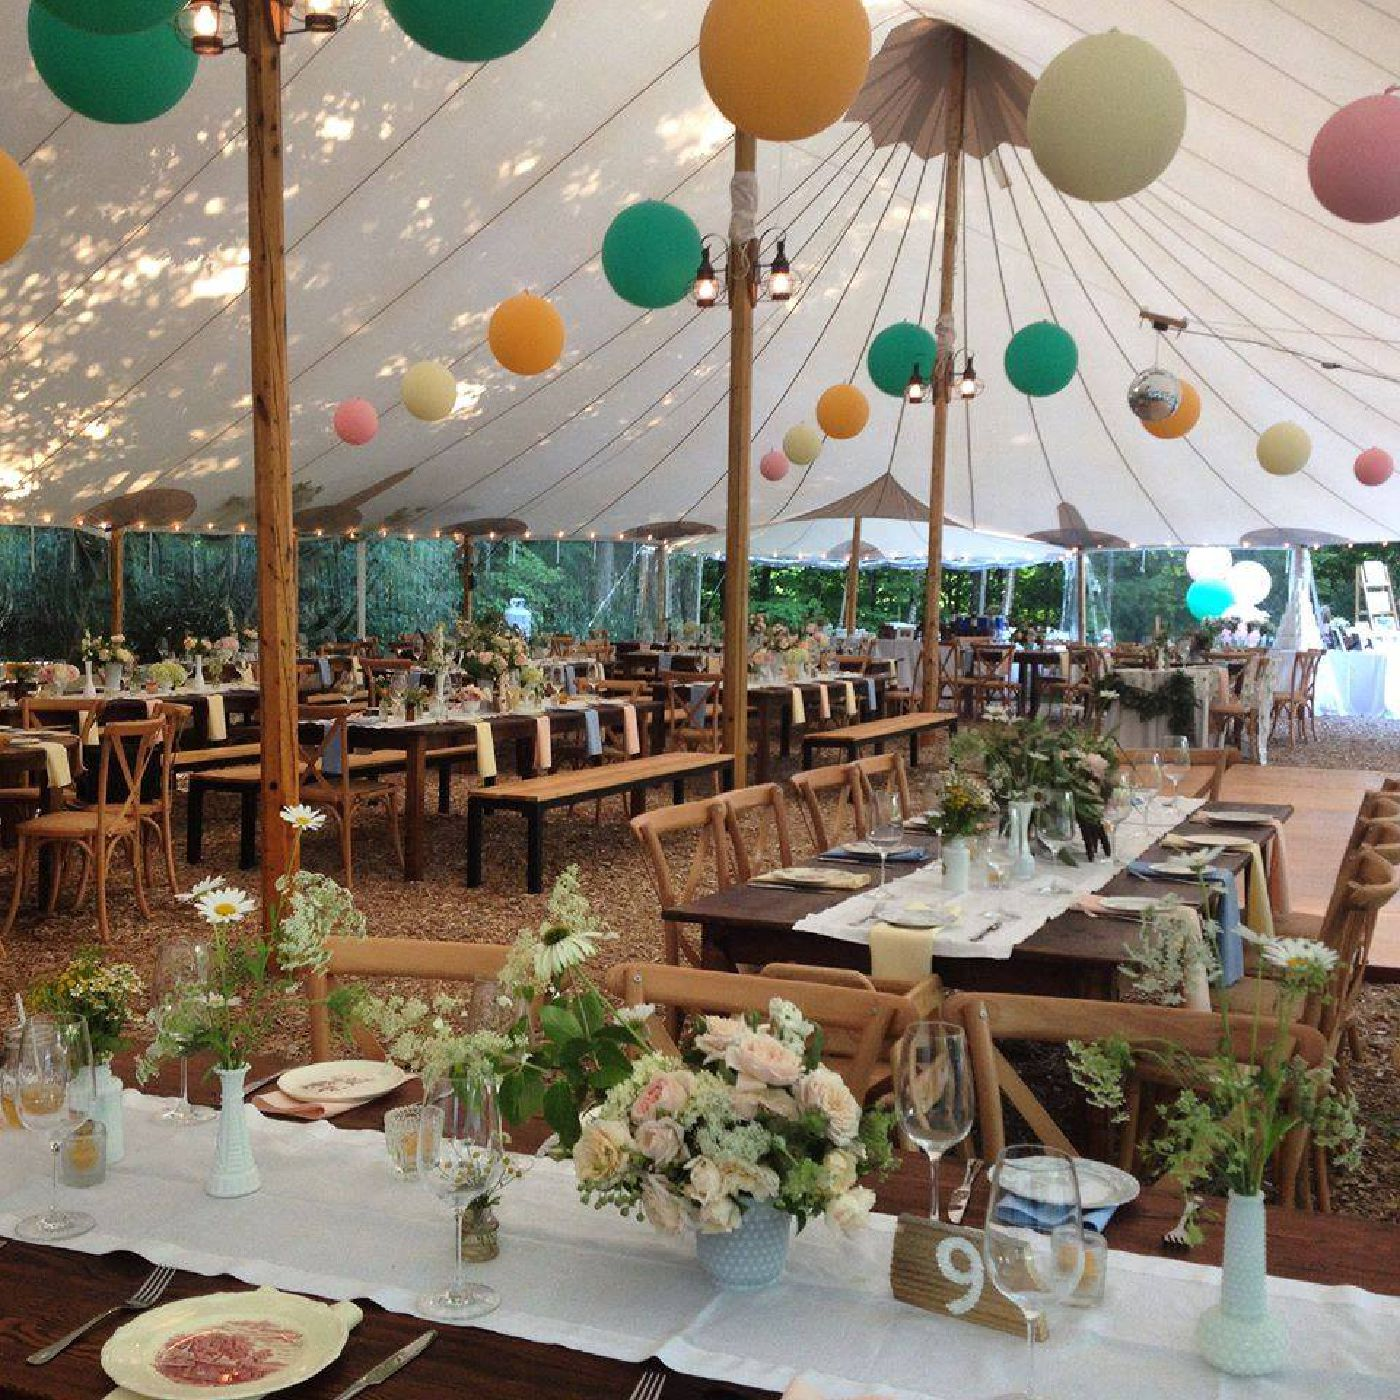 Ceremony And Reception Gap: Weddings & Events